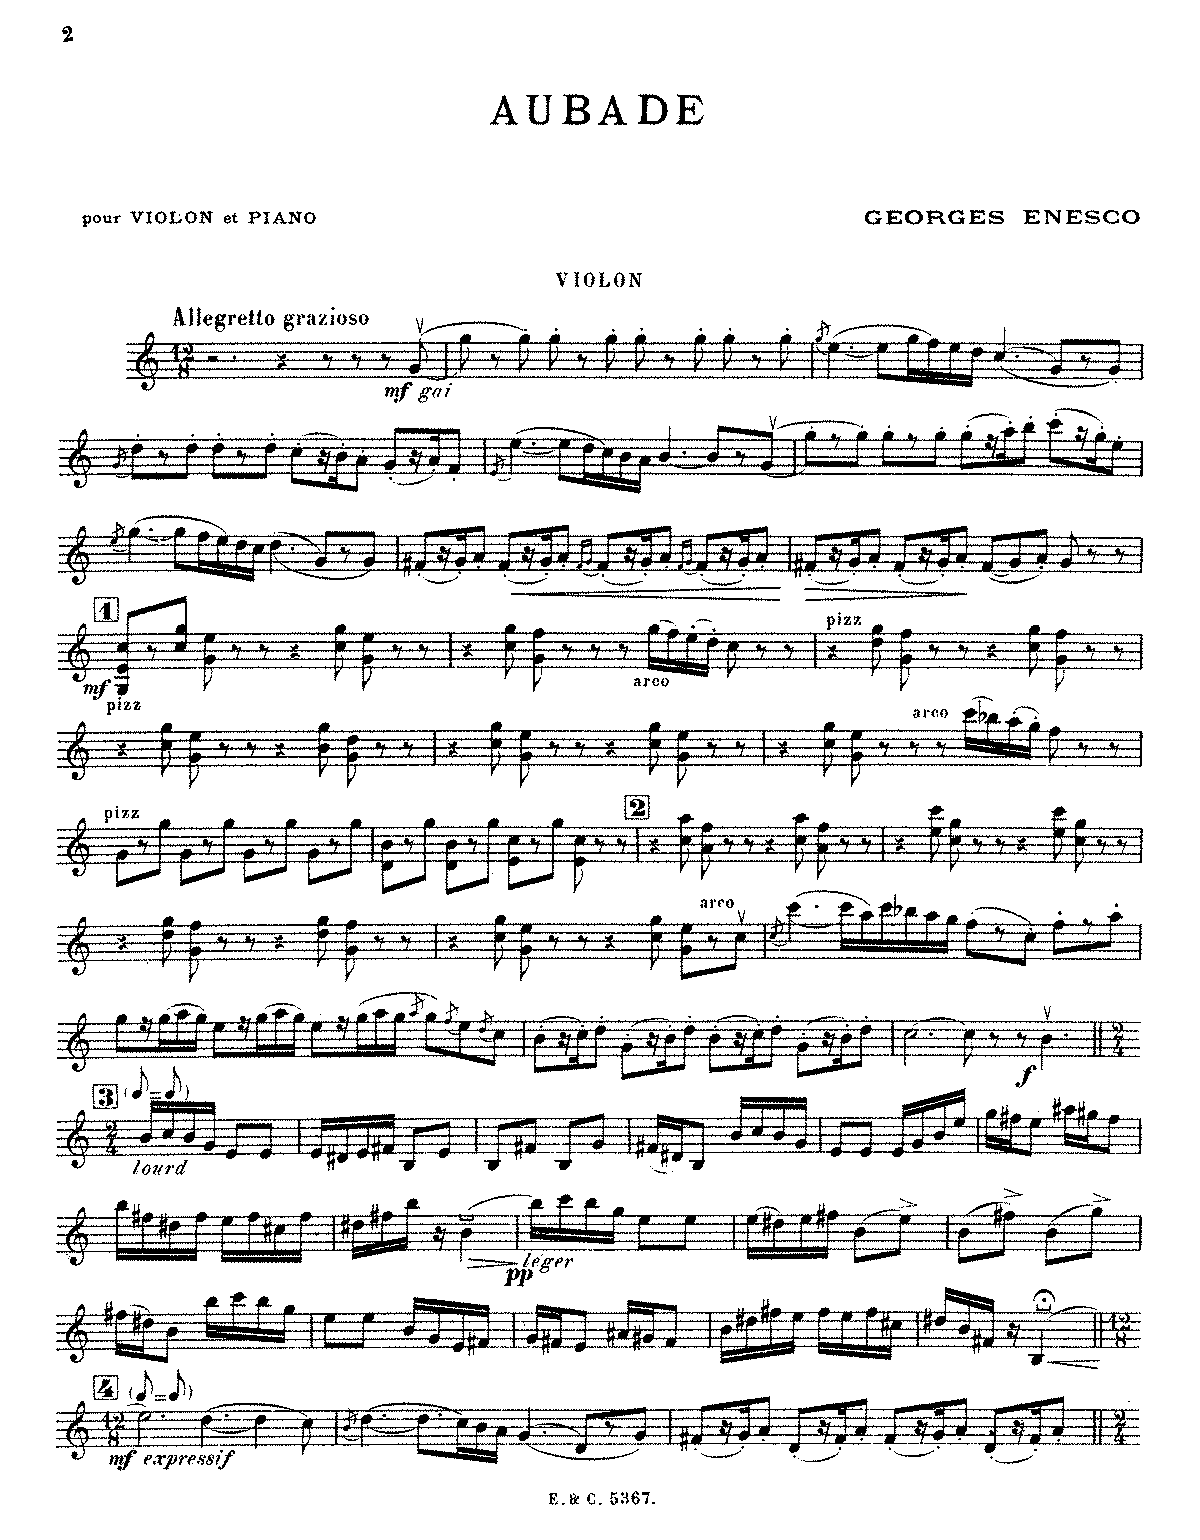 PMLP239737-Enescu - Aubade (trans. violin and piano).pdf